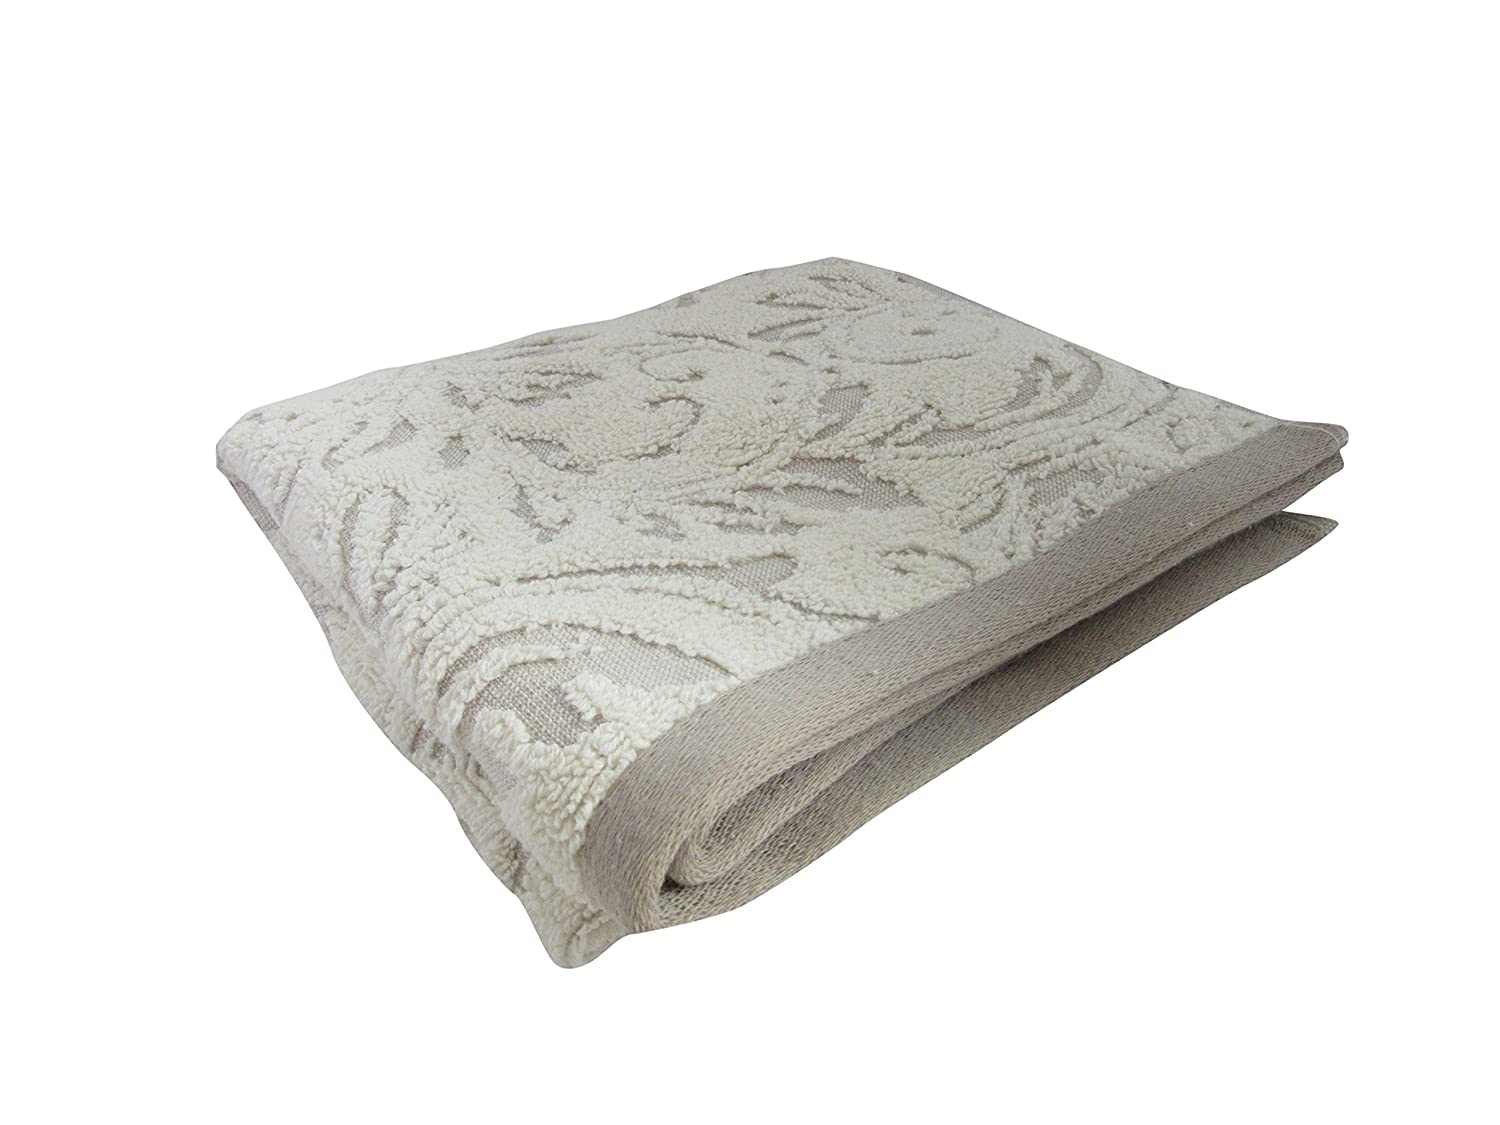 Blenheim Jacquard Towel 100% Extra Soft Turkish Cotton 650 GSM Thick Towelling With Floral Pattern in Grey Harwood Textiles